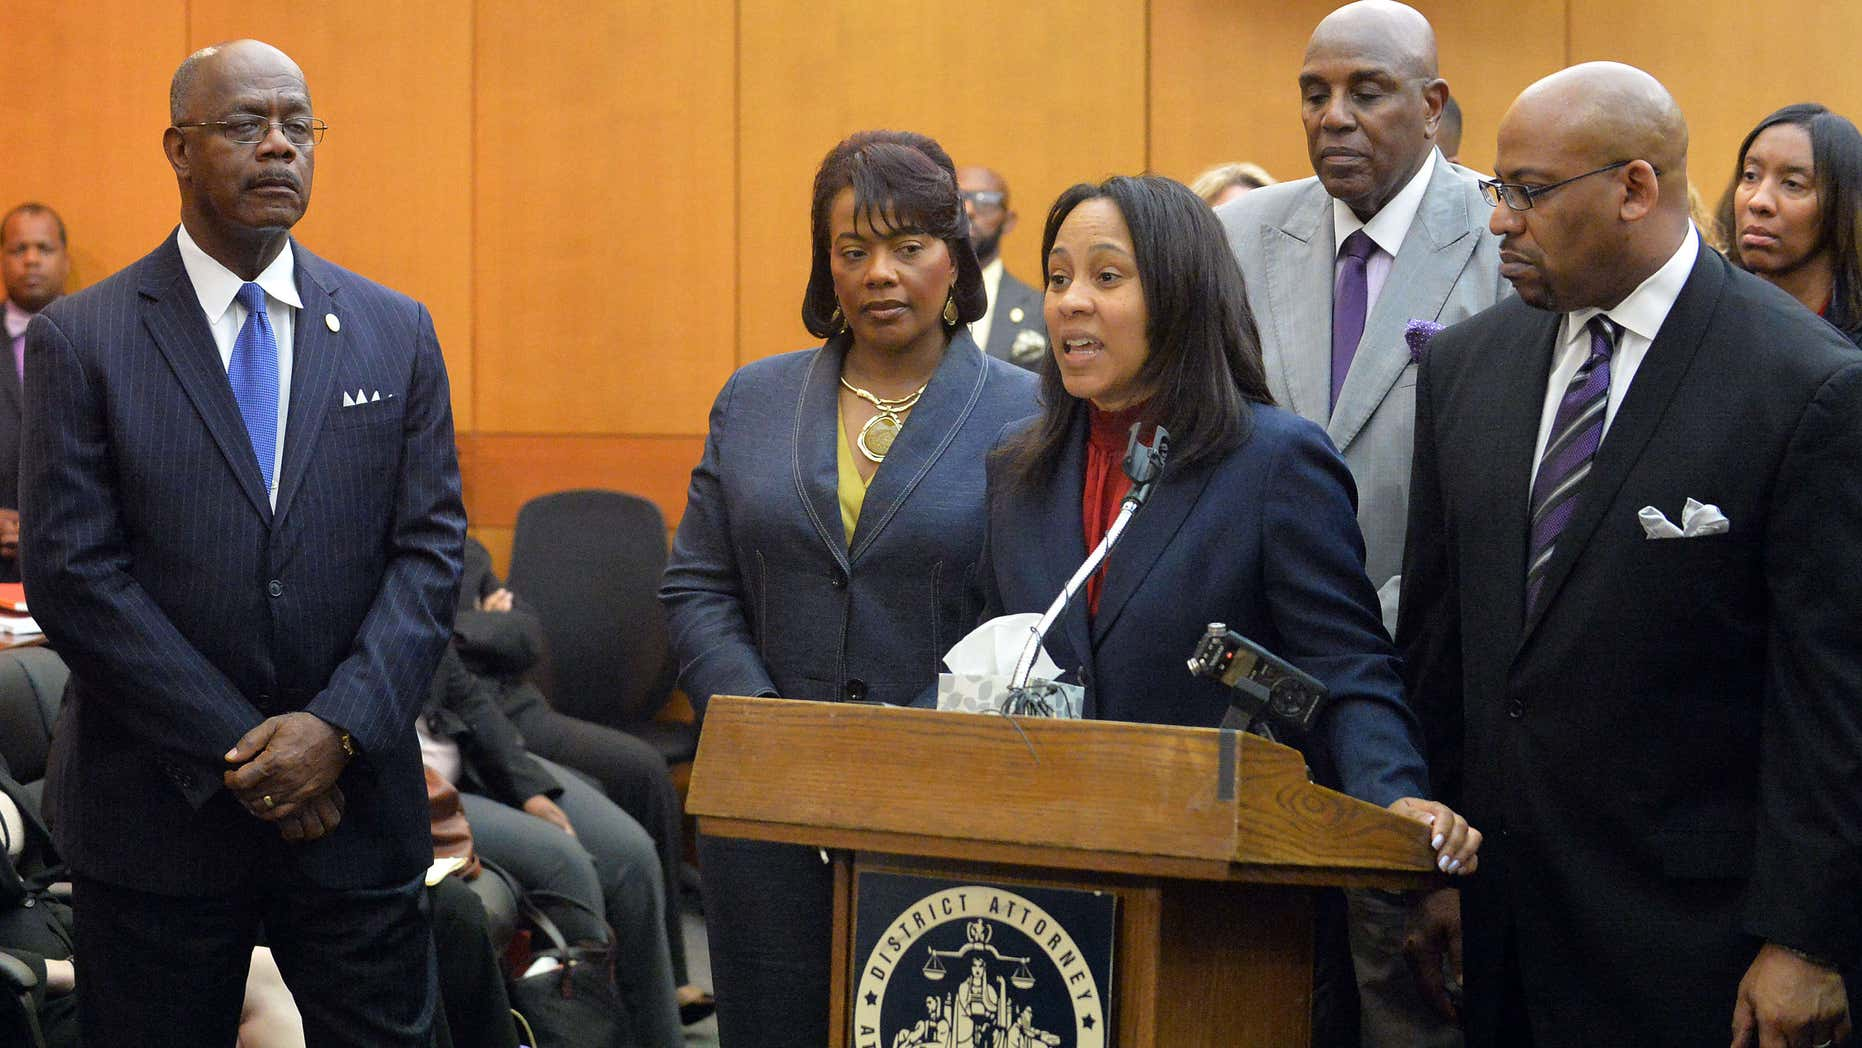 April 14, 2015: Prosecutors Fani Willis and Clint Rucker speak during a news conference following sentencing for 10 of the 11 defendants convicted in the Atlanta Public Schools test-cheating trial